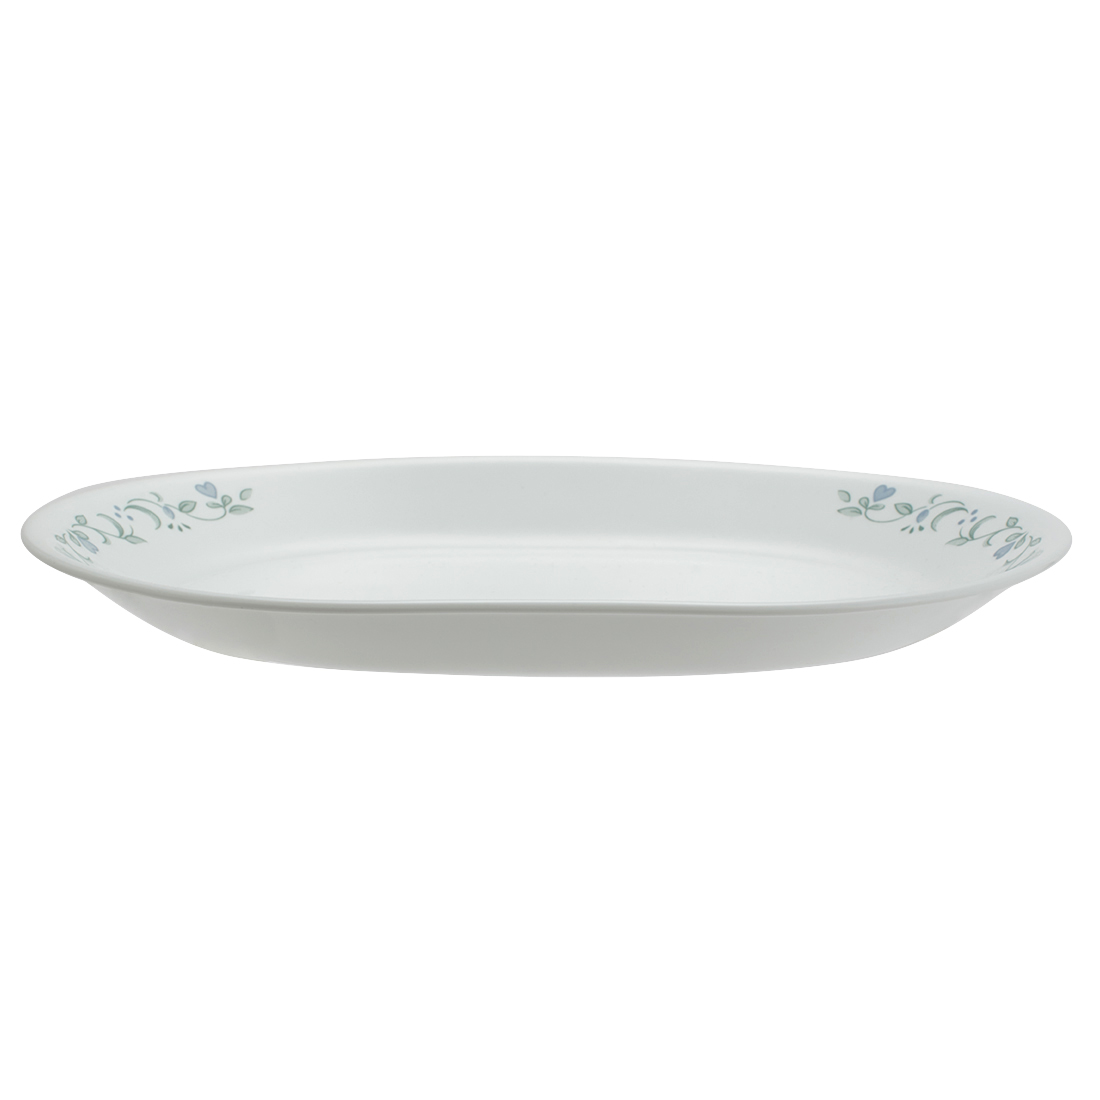 Corelle Country Cottage Serving Platter Vitrelle Platters in White Colour by Corelle